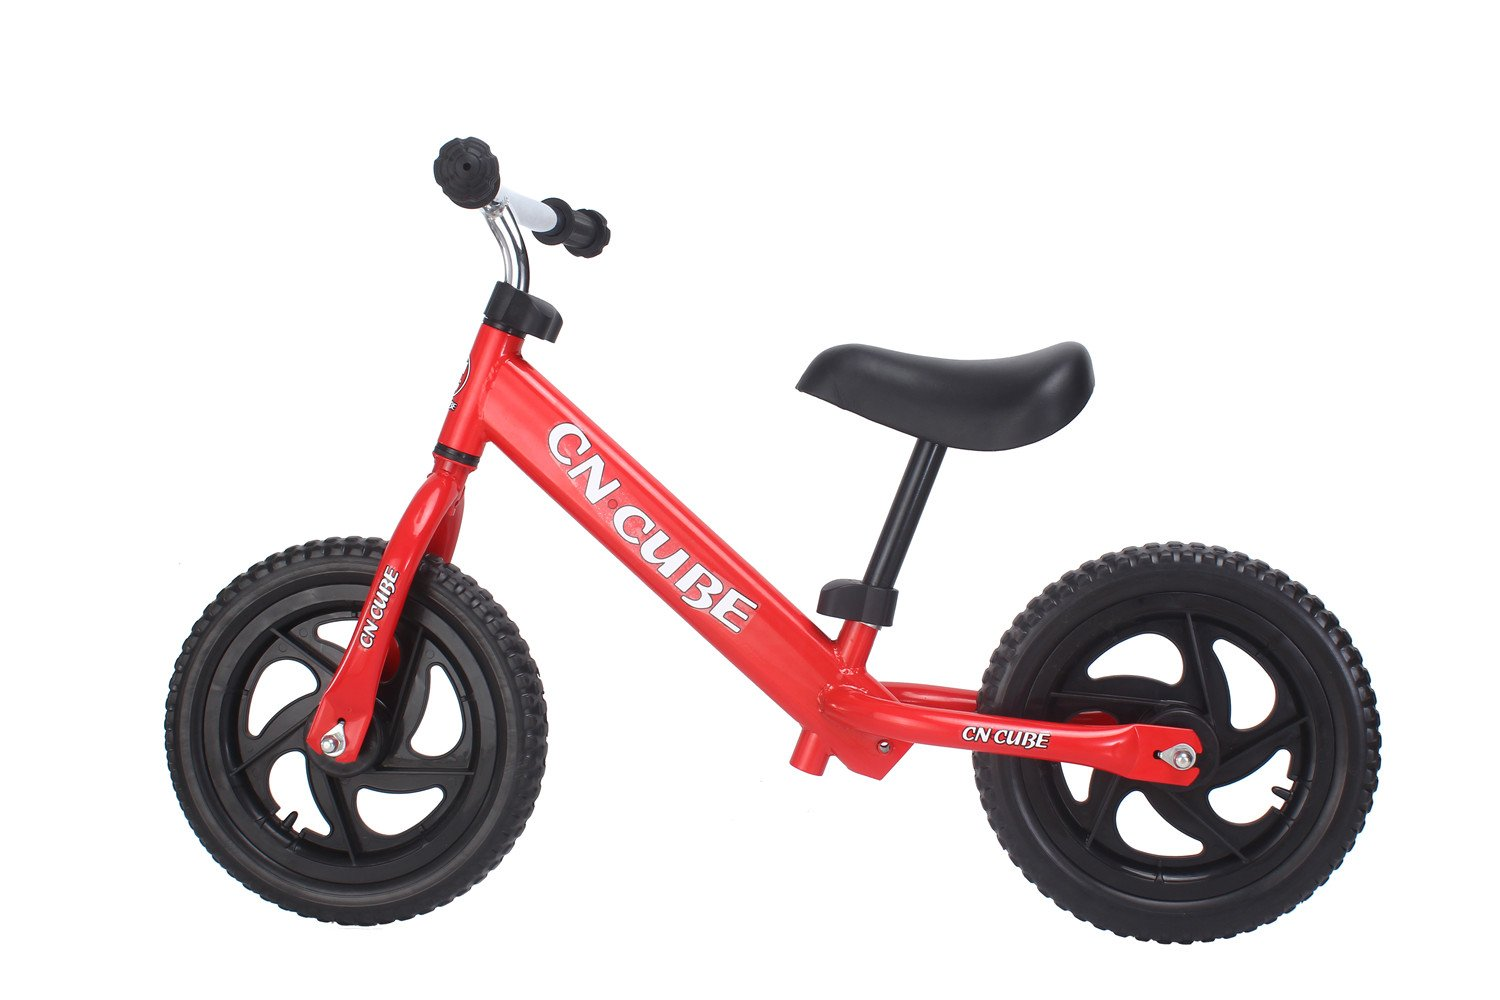 YBL Children's baby two rounds movement Balance Bike for No pedal bicycle Suitable for 2-6 years old Boys girls Carbon Steel Frame Adjustable Handlebar and Seat (red)